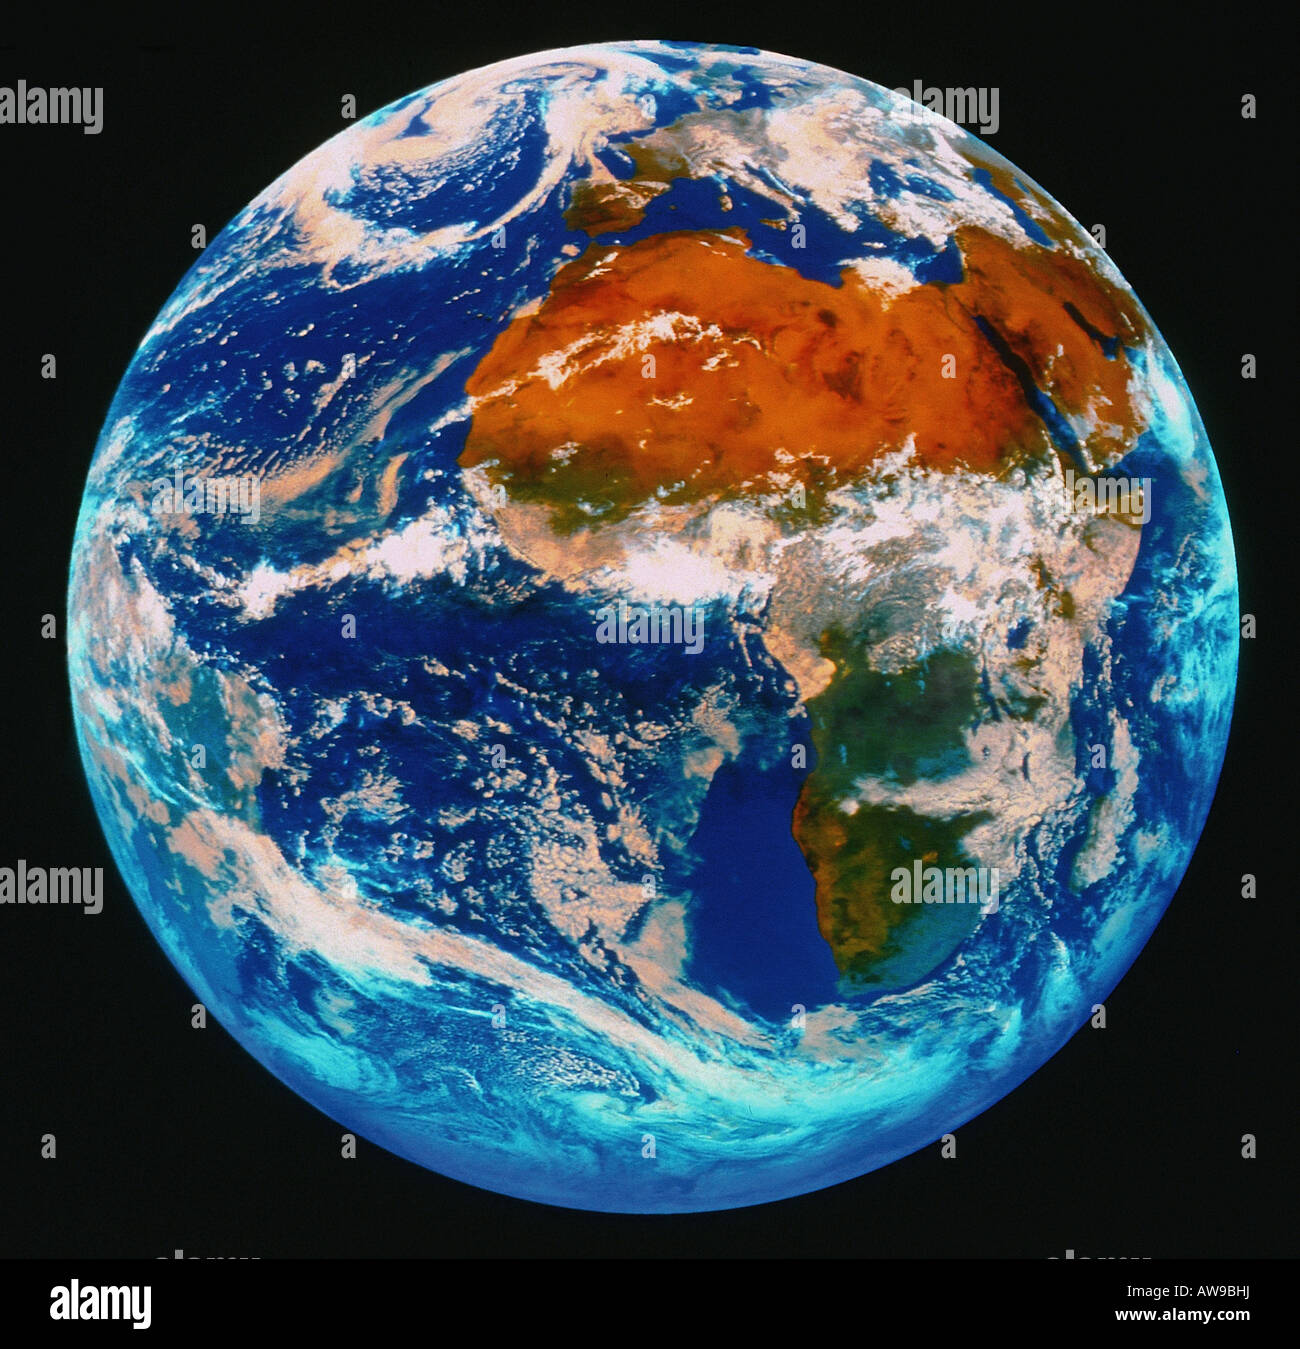 satellite photograph of the Earth from space - Stock Image